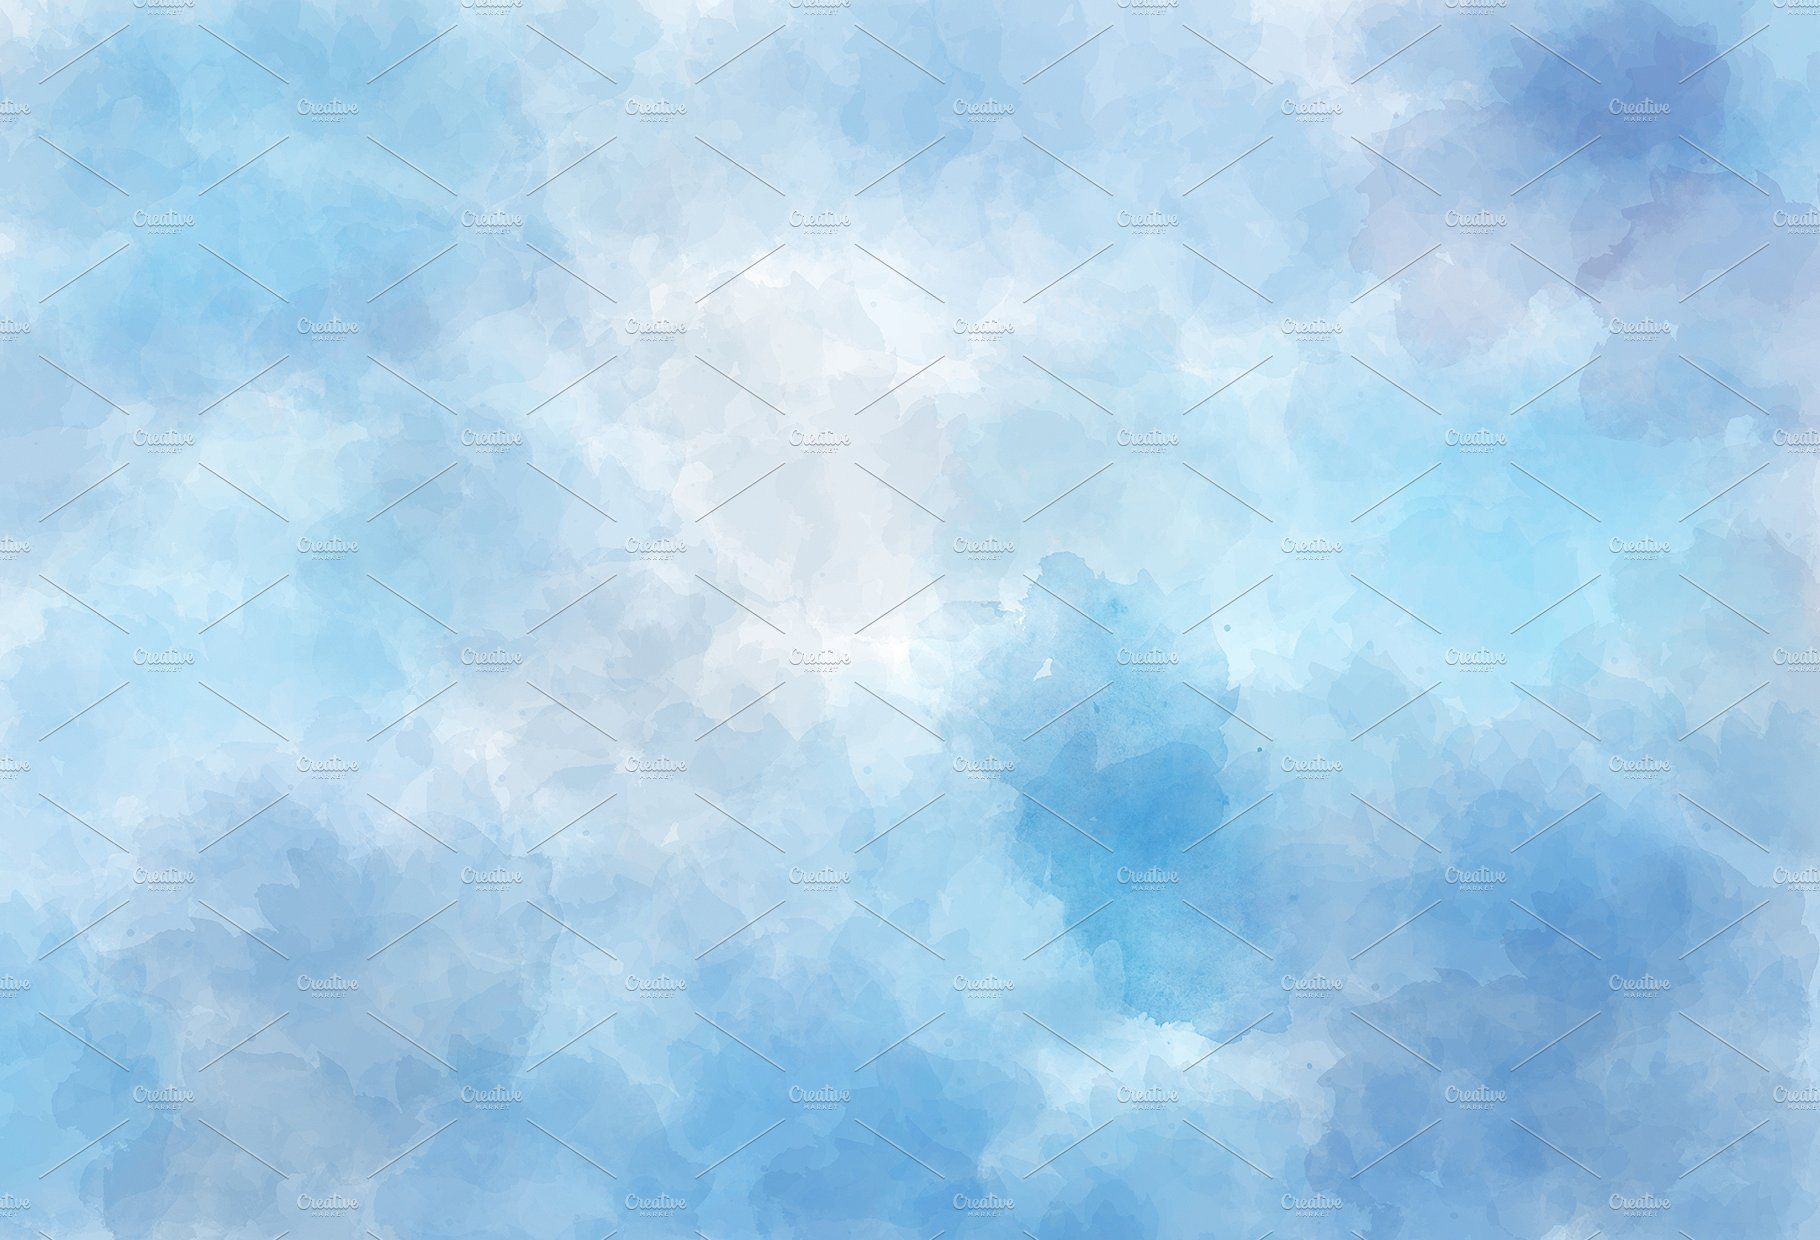 10 Blue Watercolor Backgrounds cardspostersdisplay